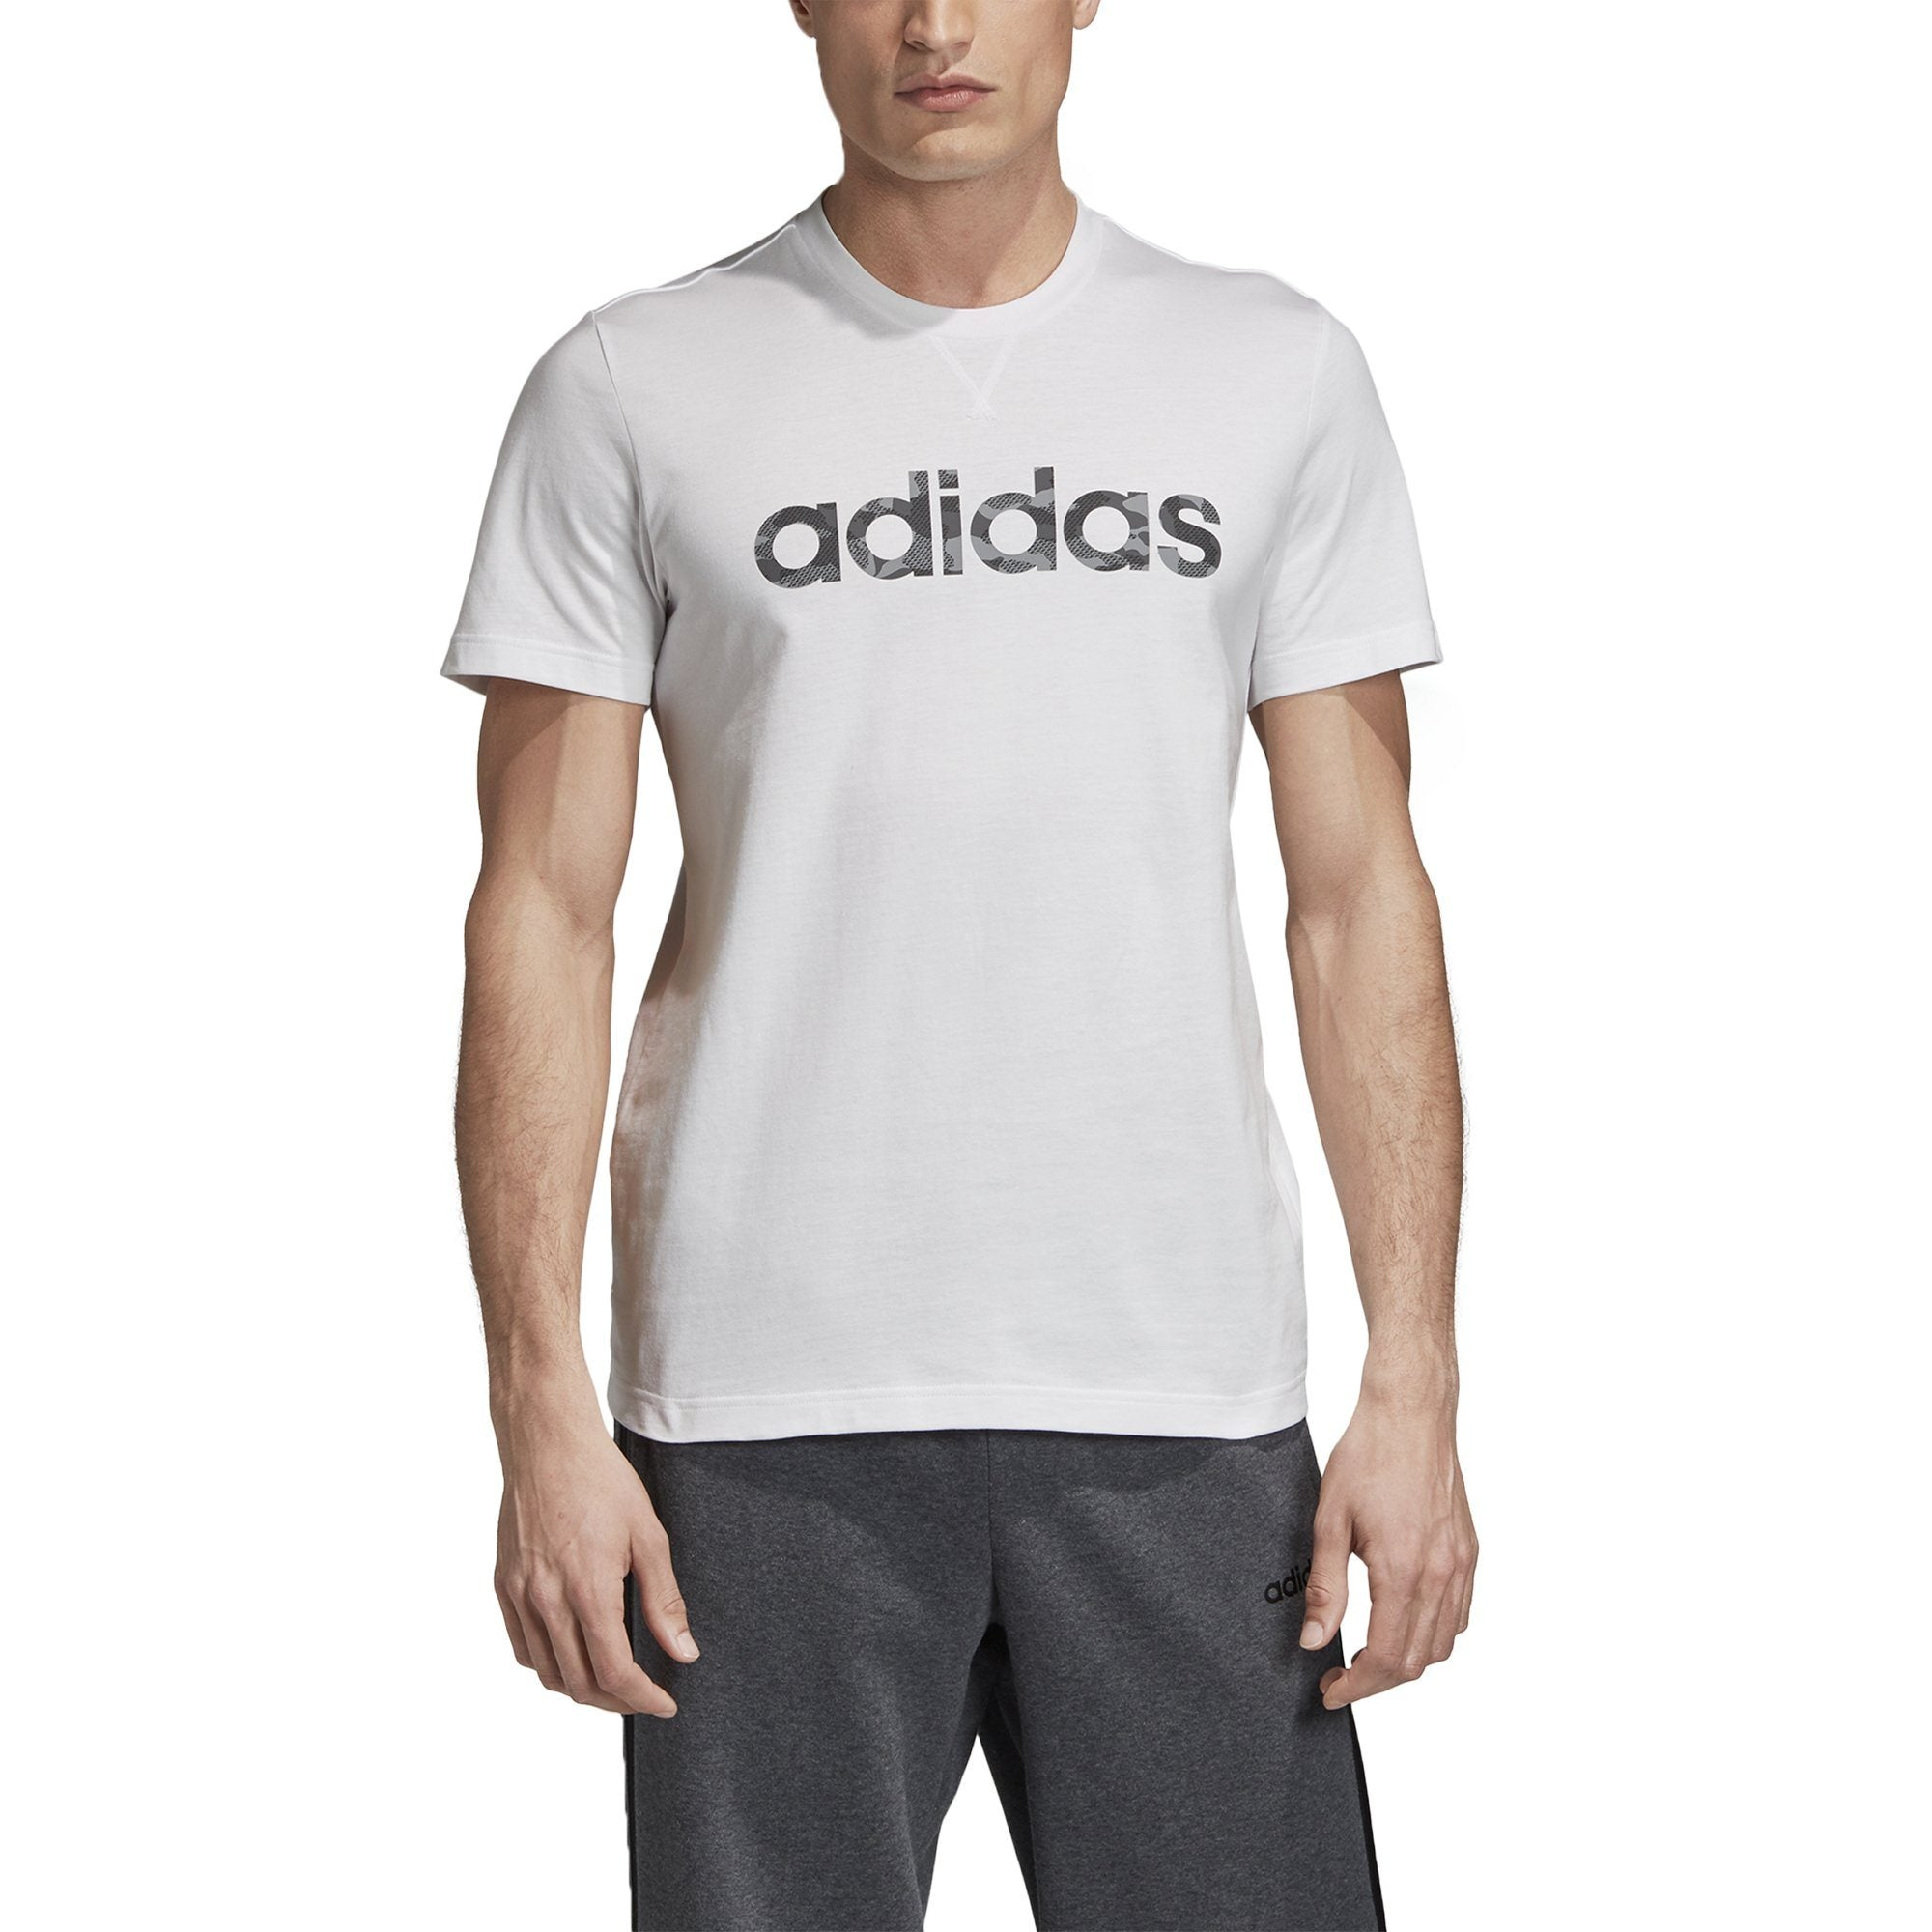 Adidas Mens Camo Linear Tee - white SP-APPARELTEES-MENS Adidas